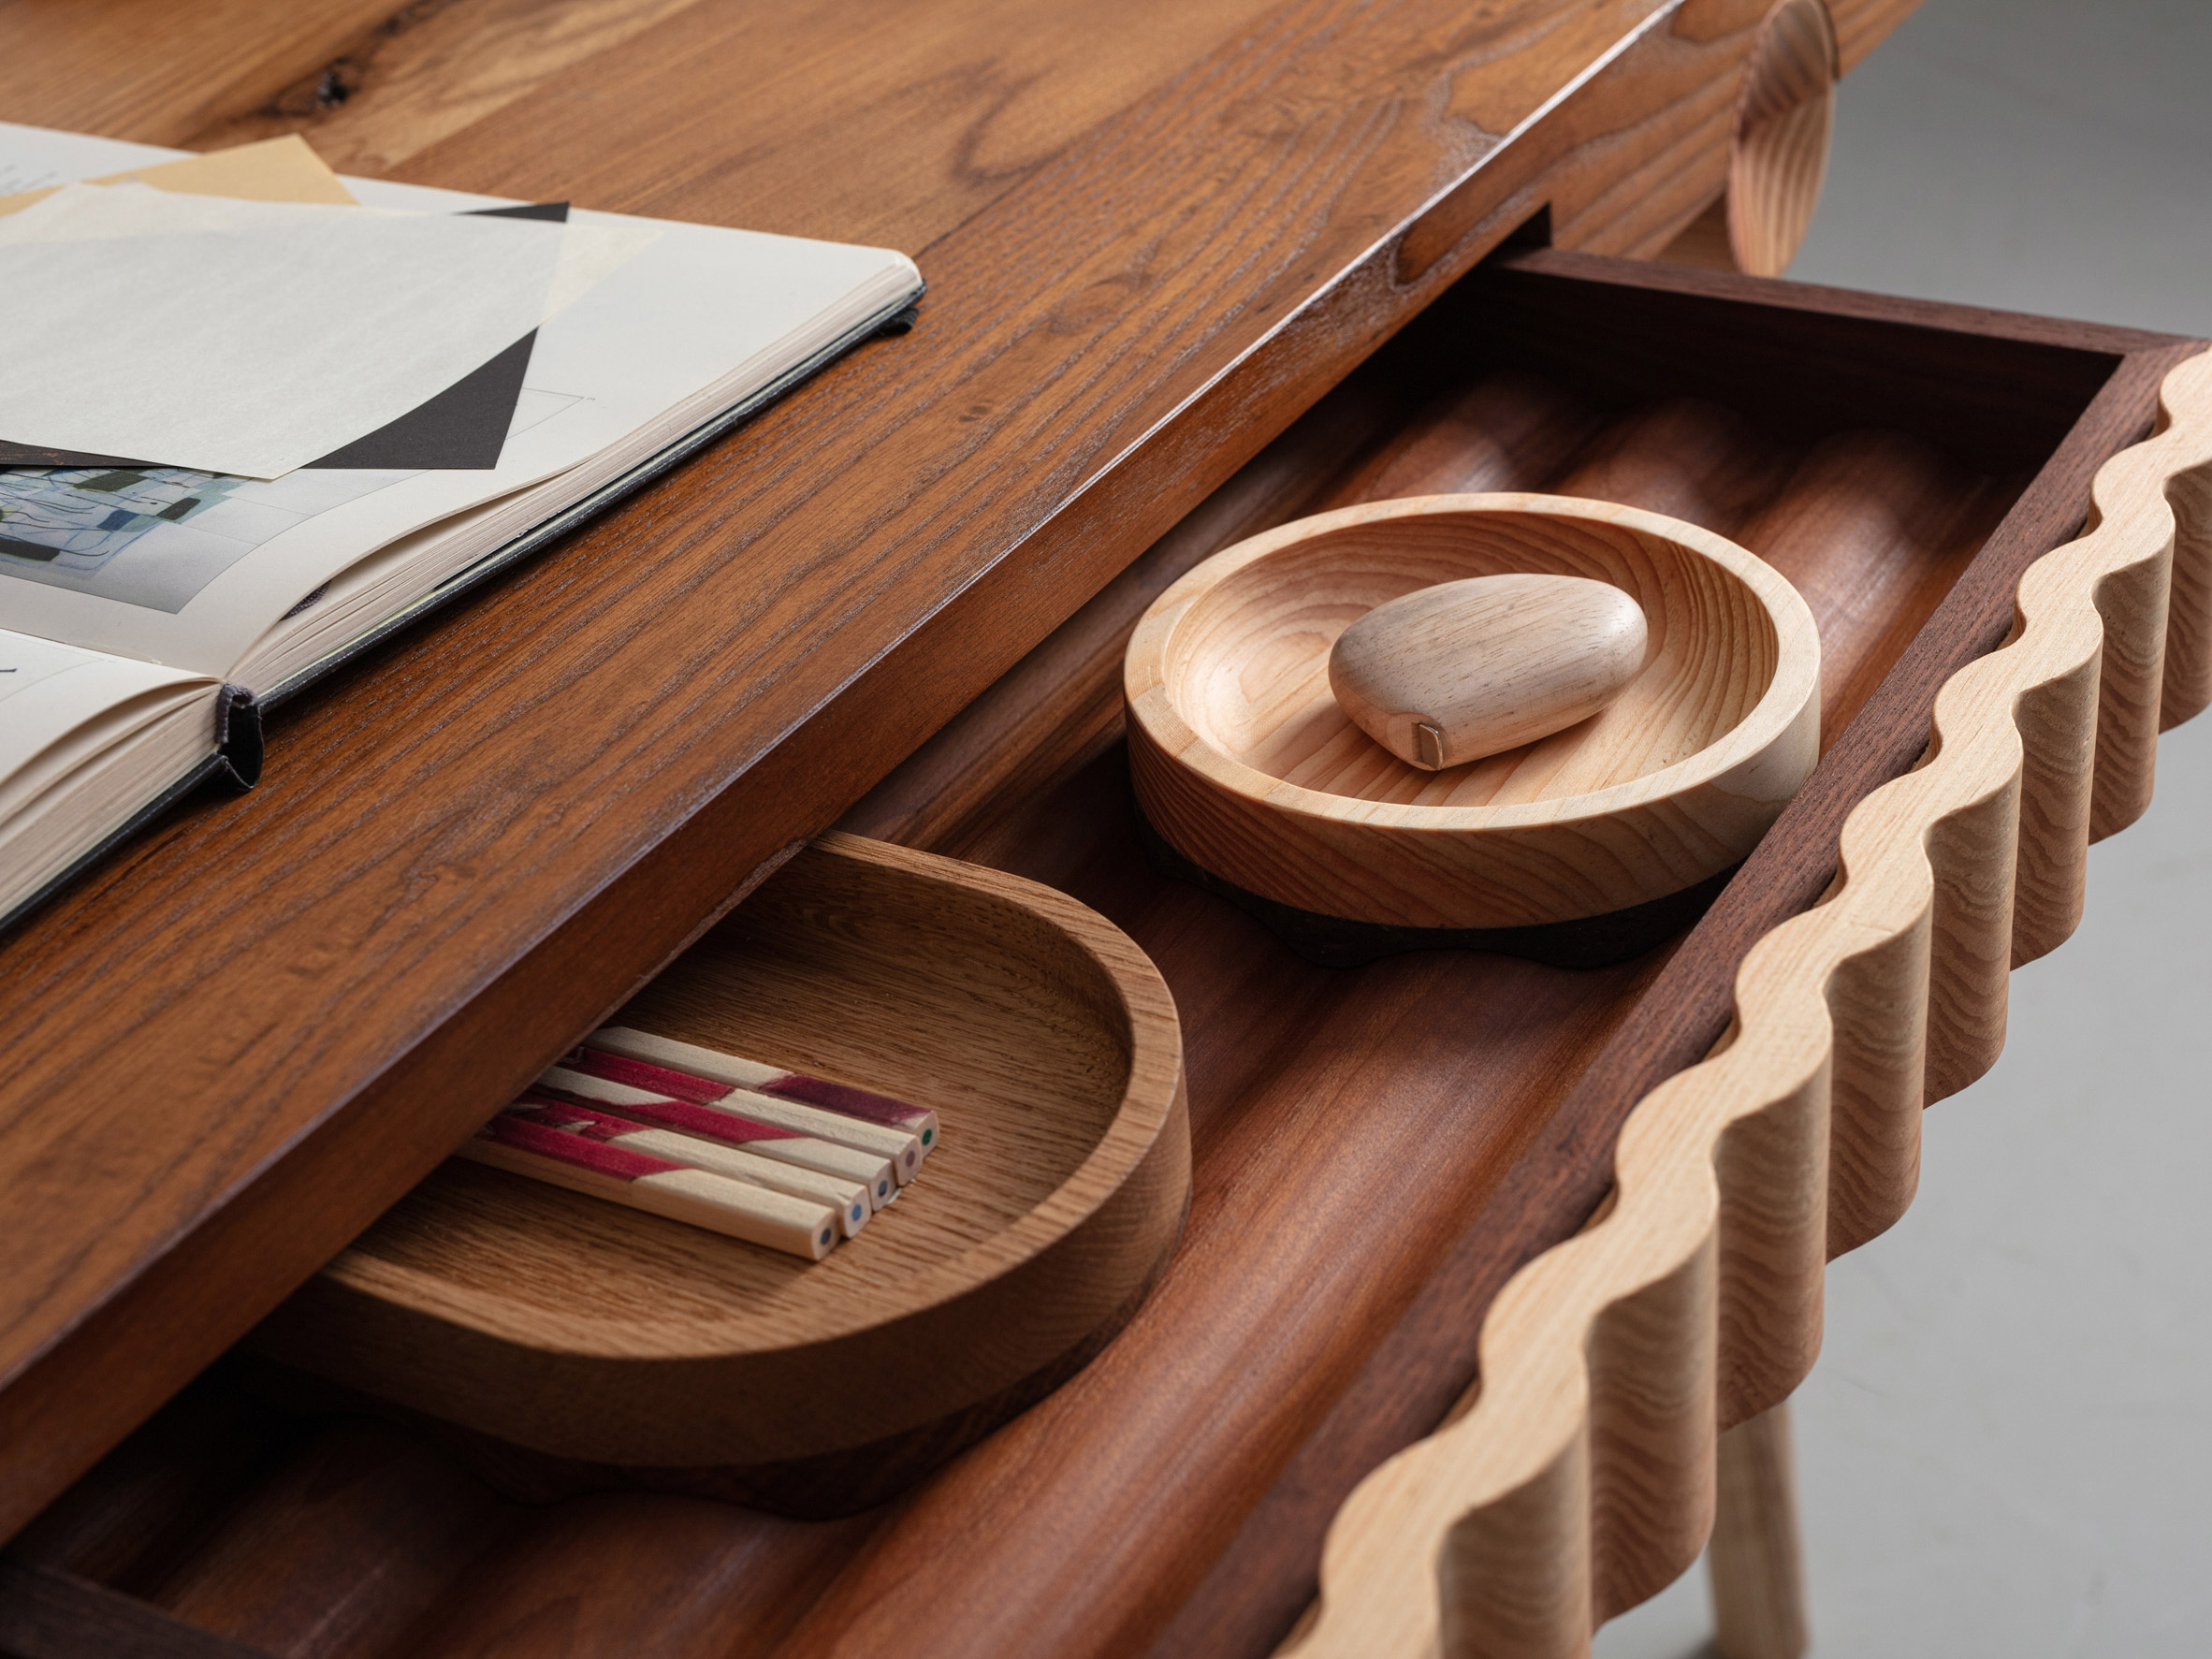 The desk and catchalls from Jan Hendzel Studio's collection made using British hardwood